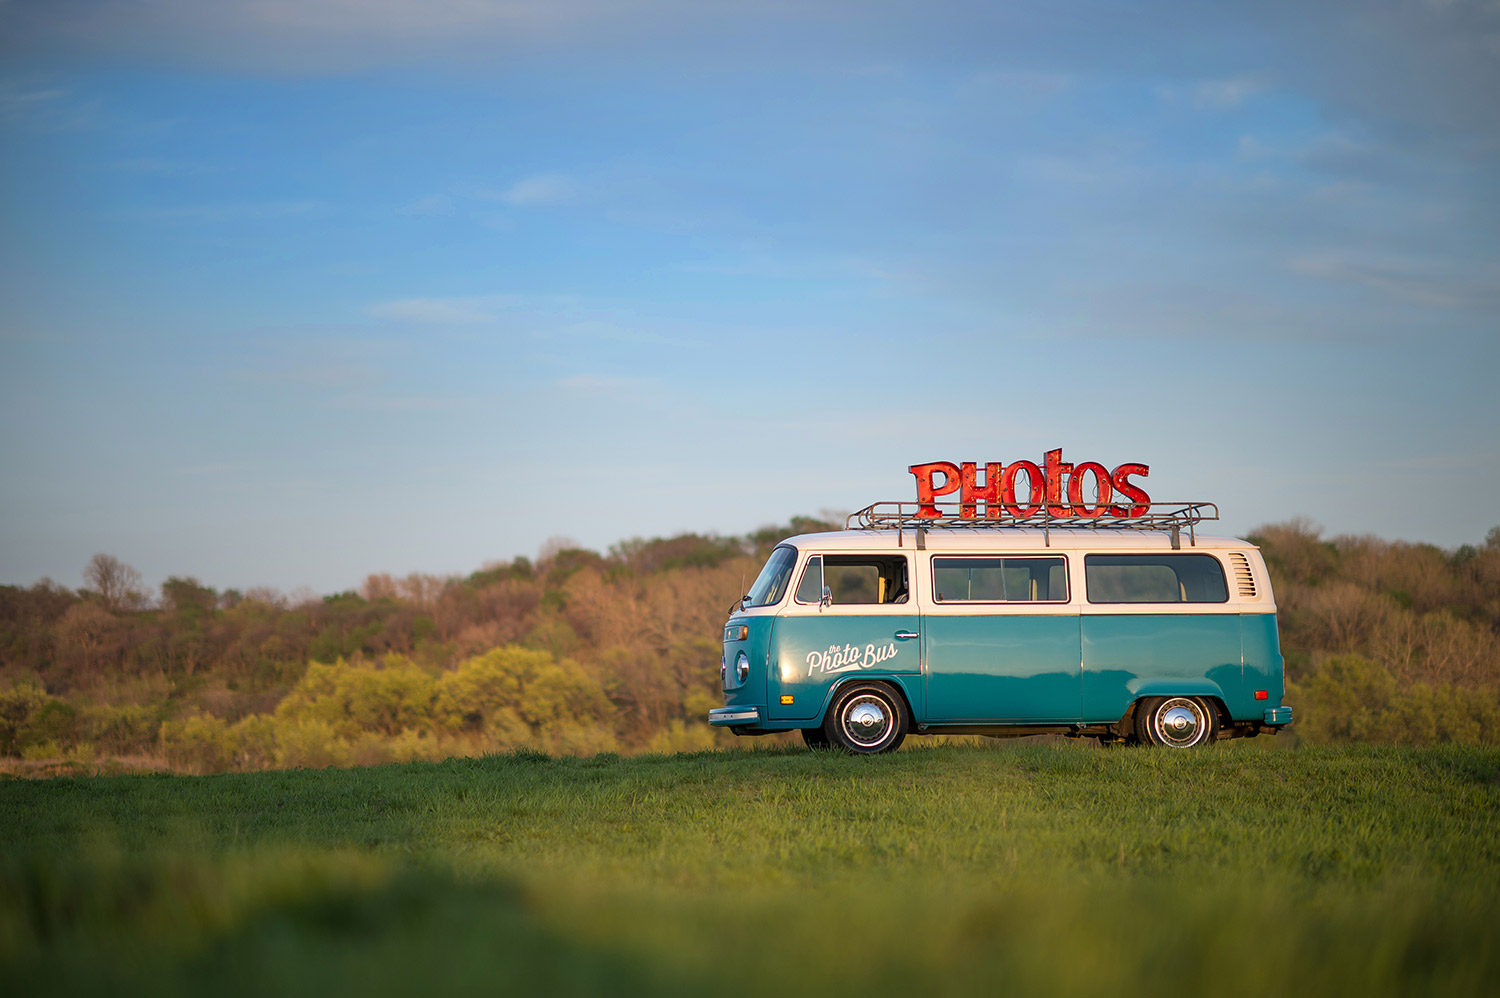 The Photo Bus DFW - A Mobile Photo Booth in a Vintage VW Bus